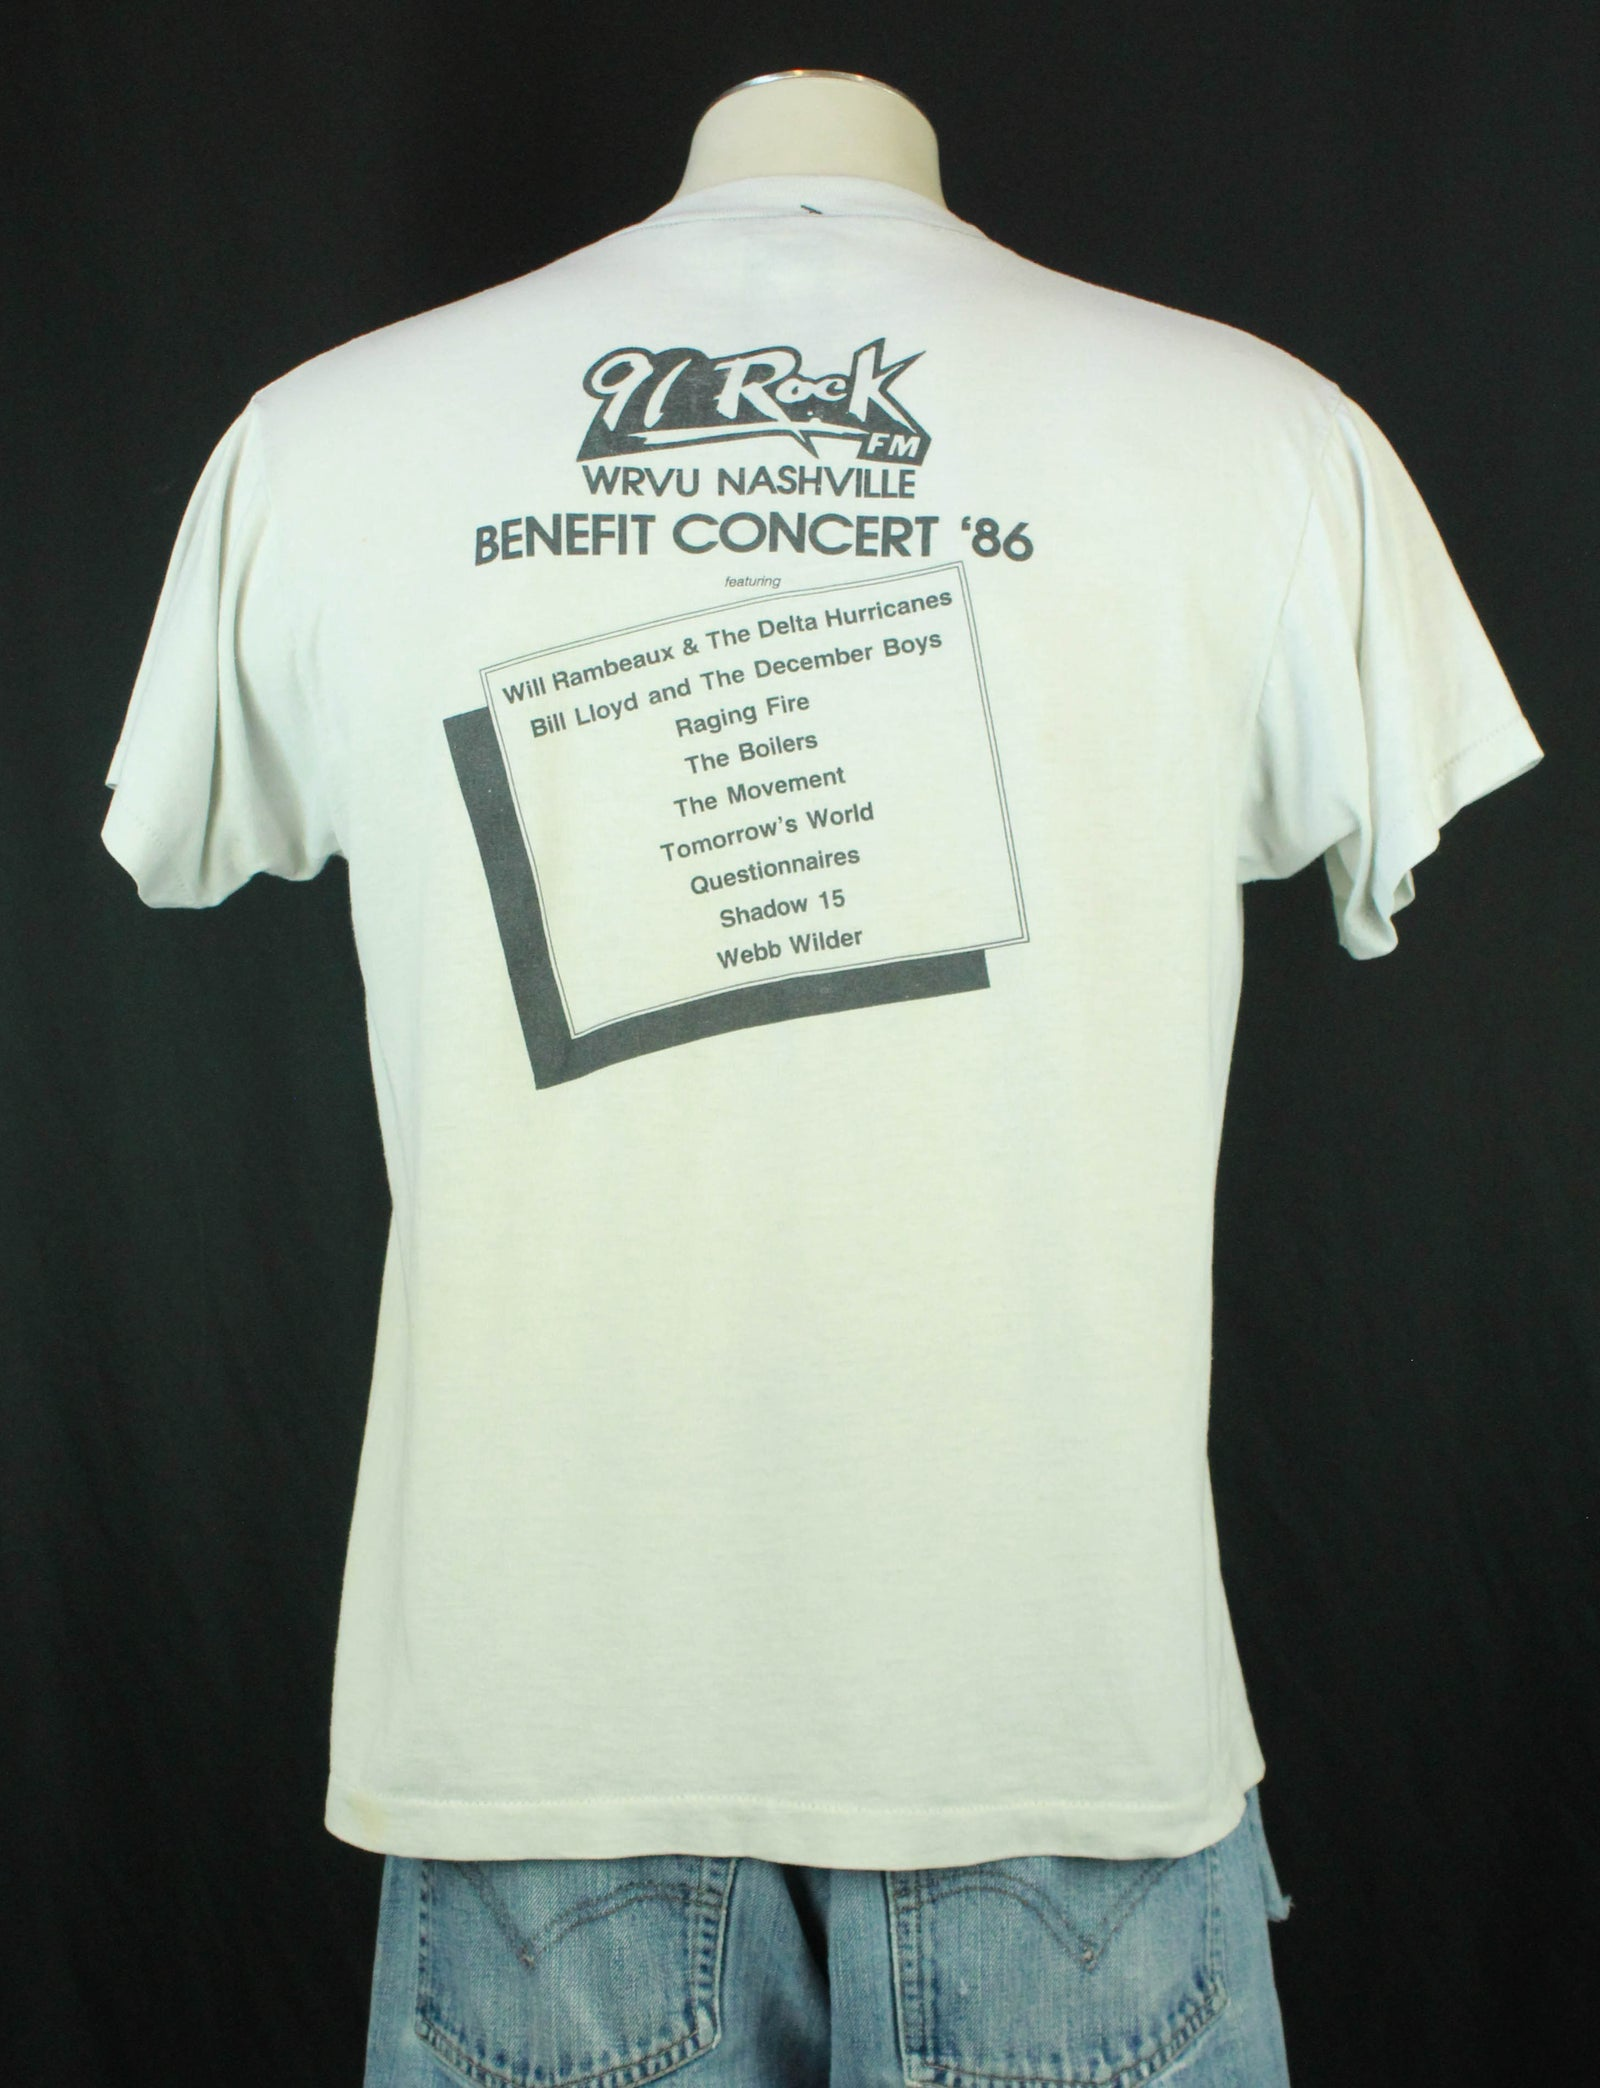 Vintage 91 Rock FM WRVU Nashville Graphic T Shirt 1986 Benefit - Large